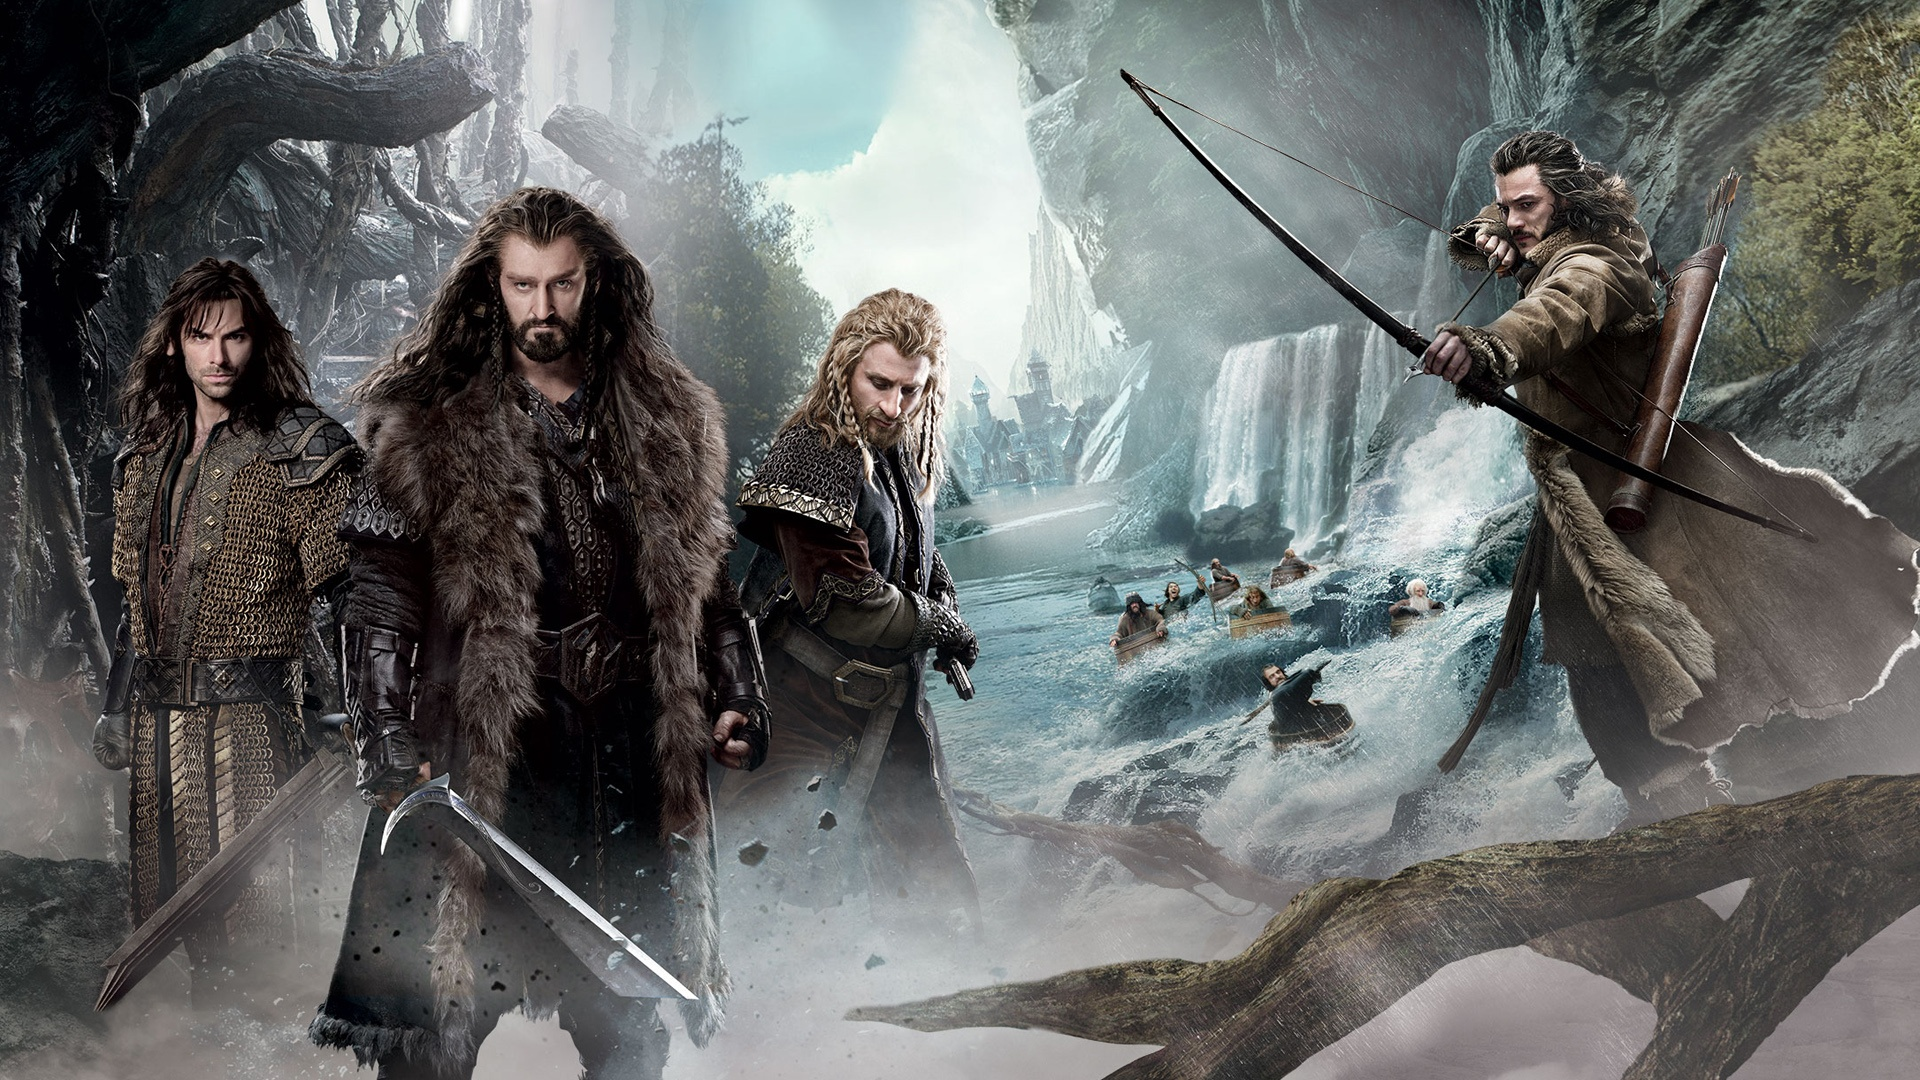 The Hobbit 2 Movie Wallpapers in jpg format for download 1920x1080